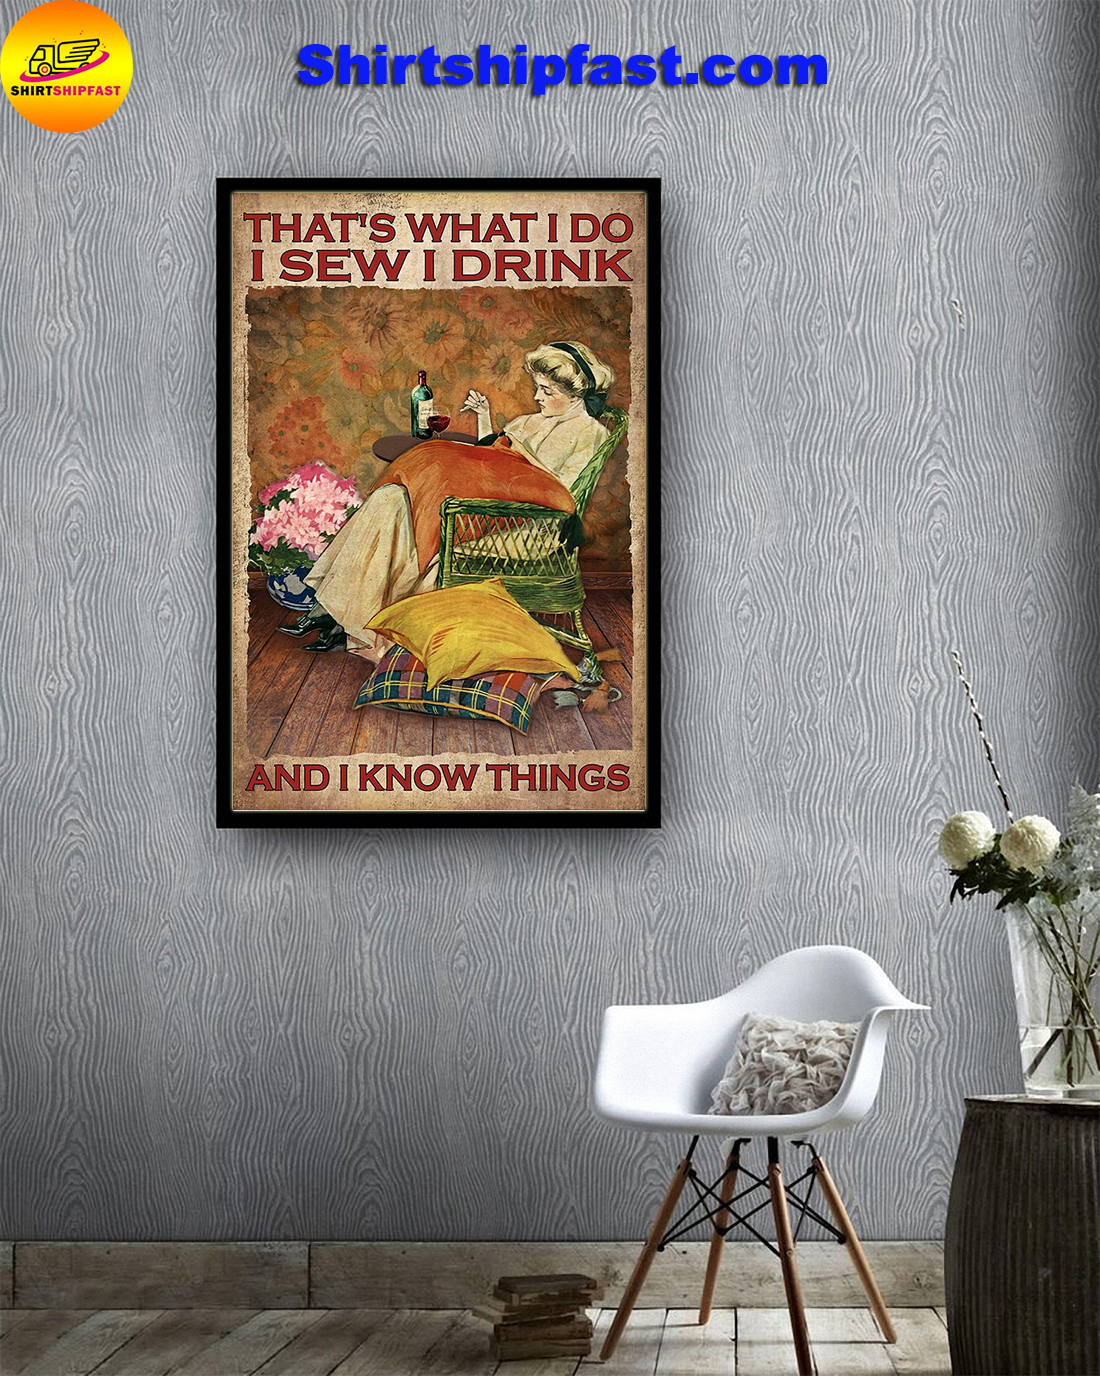 Girl That's what I do I sew I drink and I know things poster - Picture 3